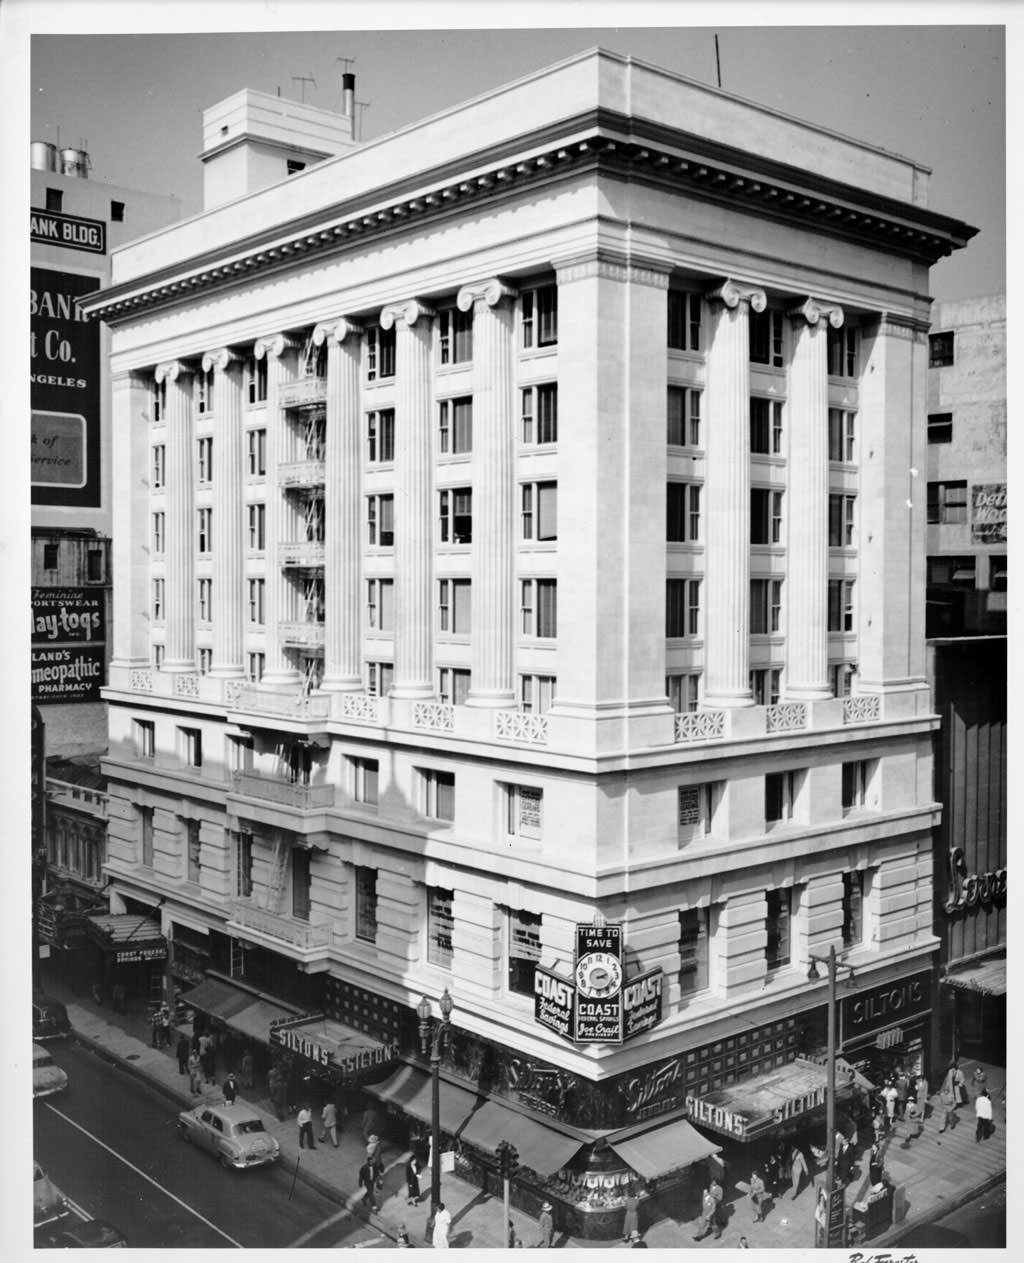 The Merritt Building (With Images)